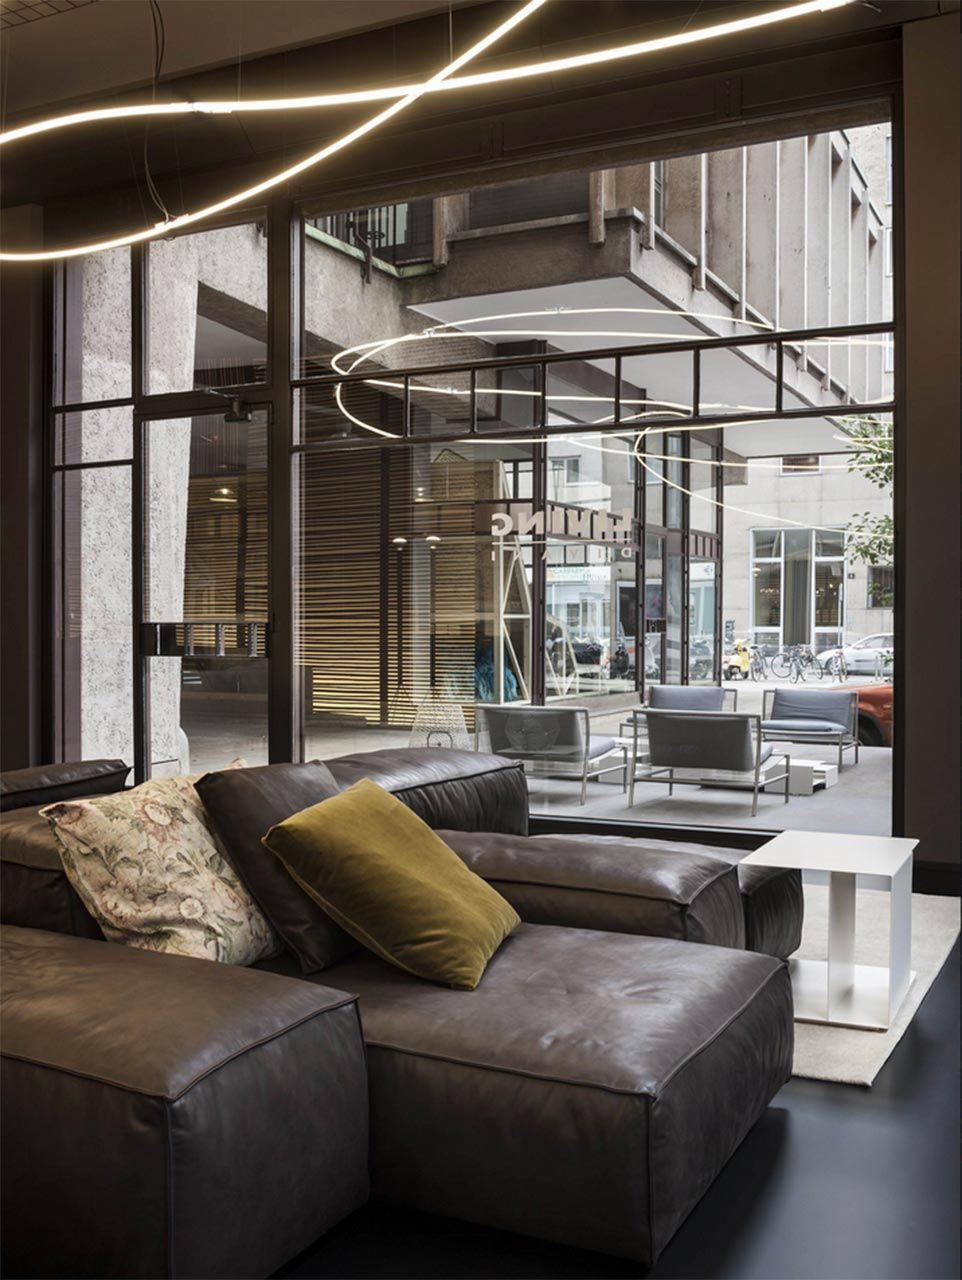 A Spectacular Location Right In The Center Of Milan Living Divany Has Just Opened Its New Pop Up On First Floor Torre Velasca